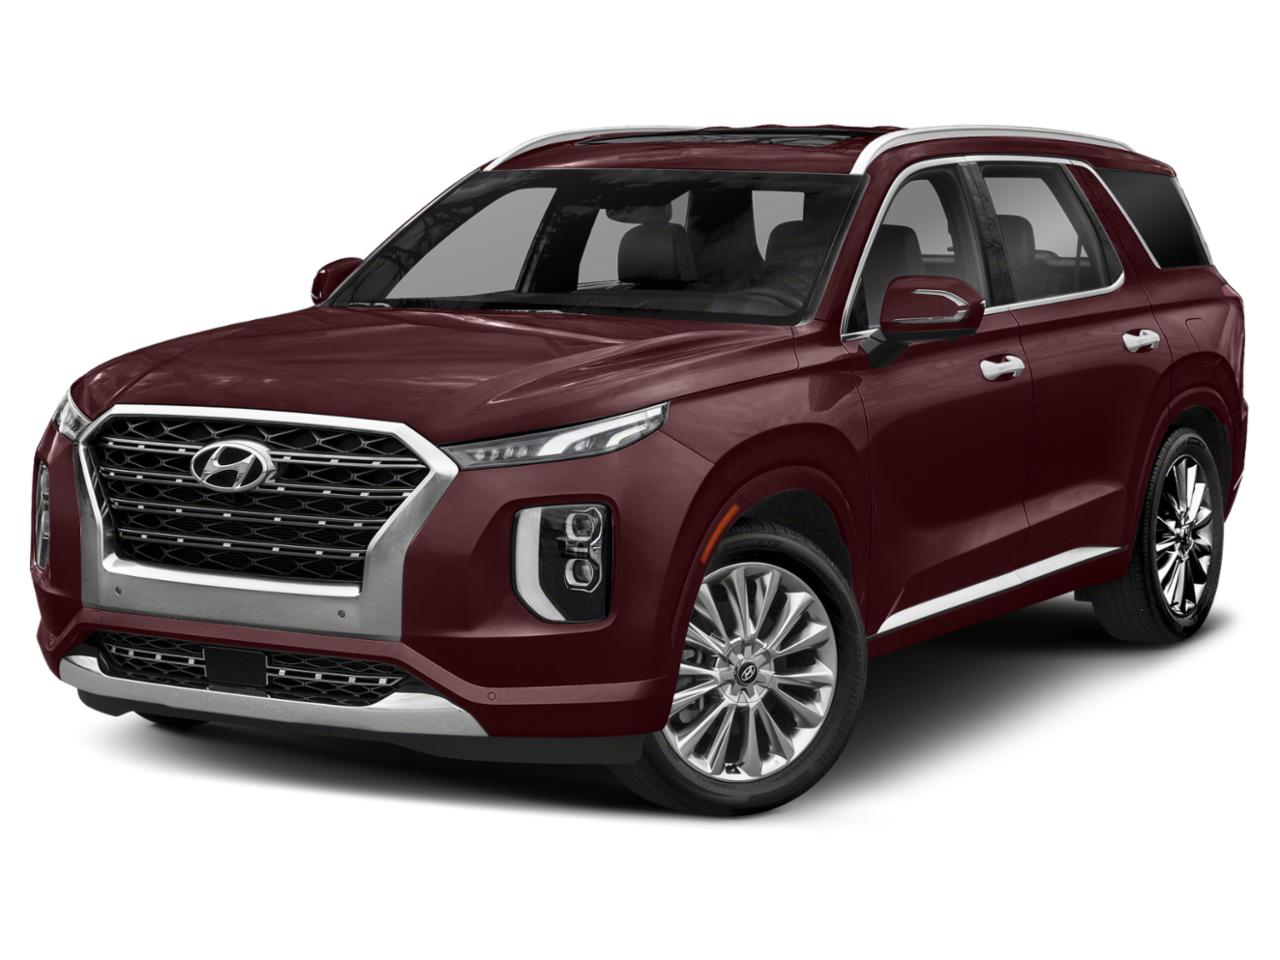 2020 Hyundai Palisade Vehicle Photo in Odessa, TX 79762